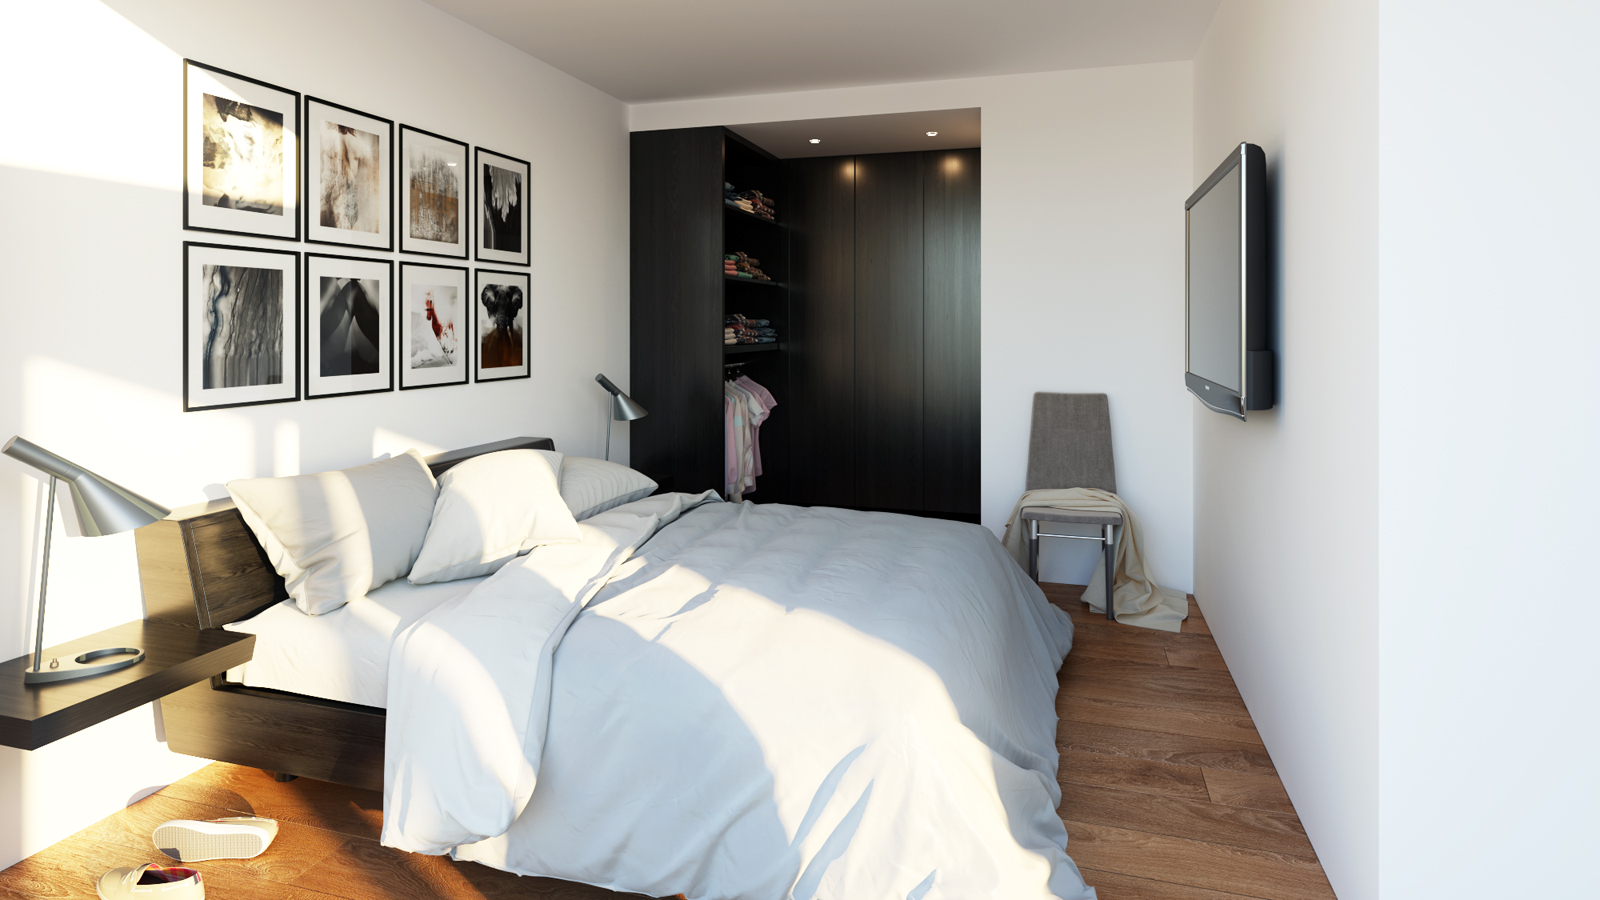 Lc consult vastgoed consultancy brugge dhondt for Dhondt interieur brugge